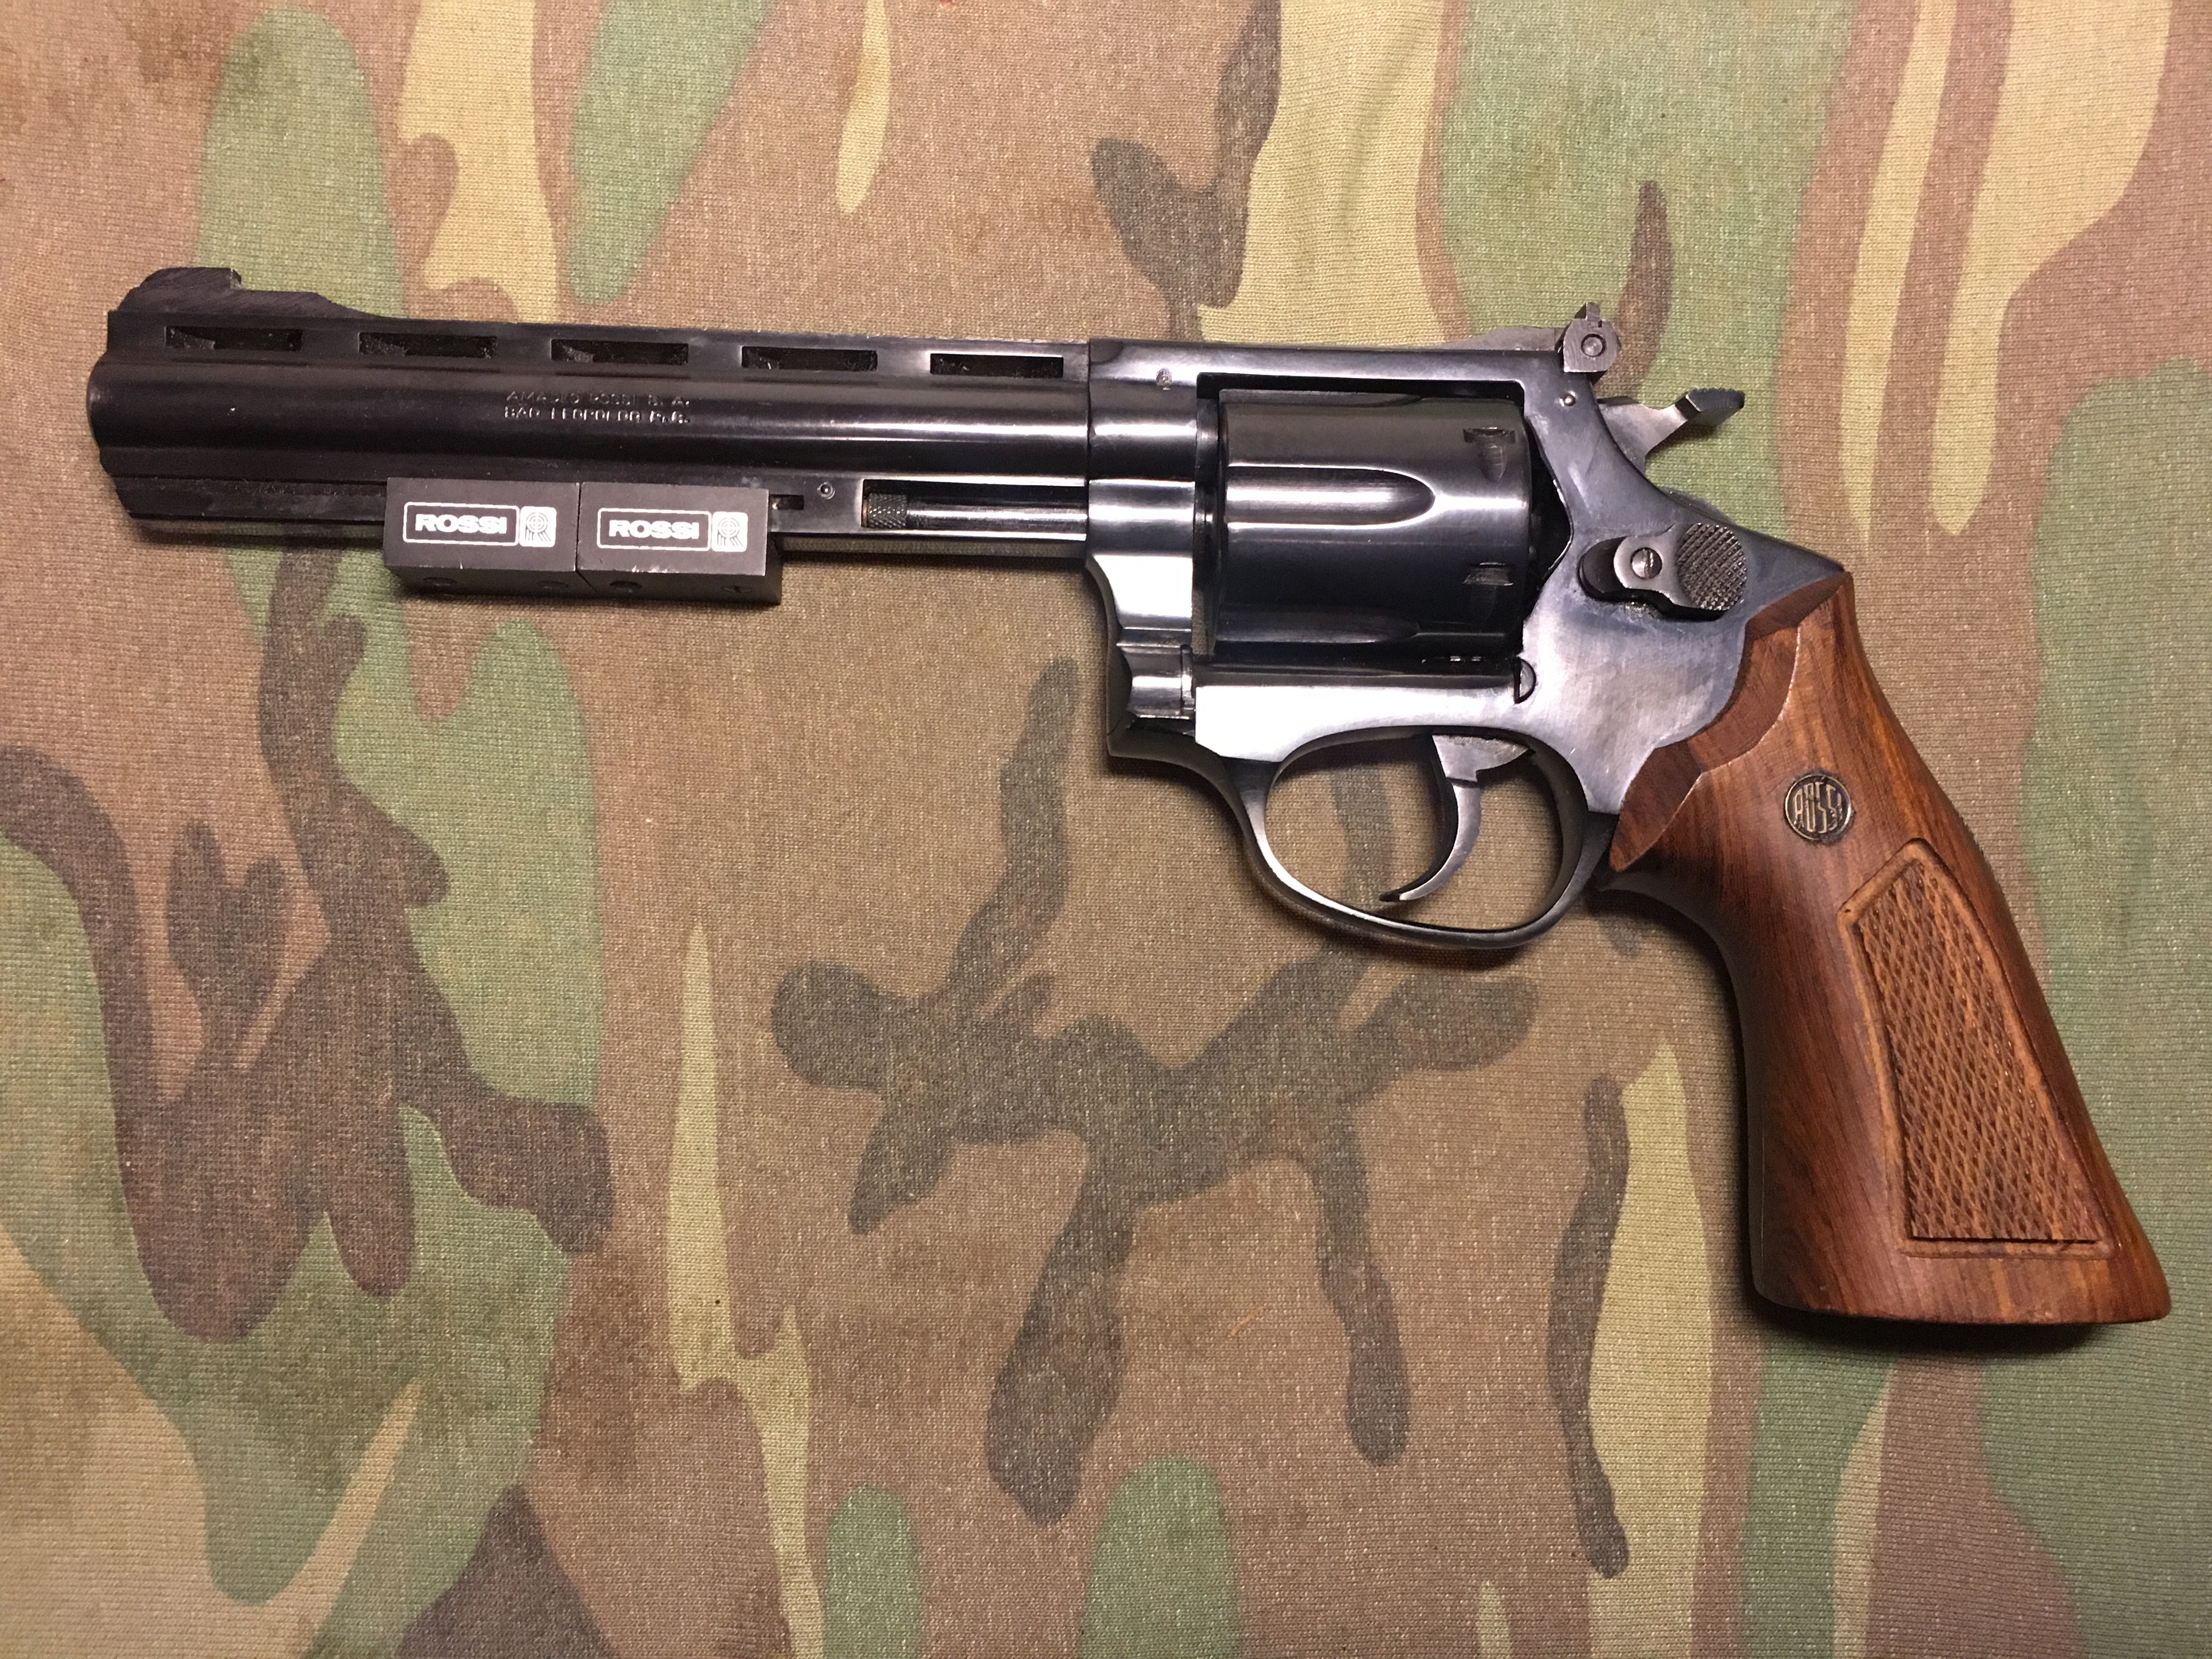 Let's see your Rossi Revolver photos! - Attachments